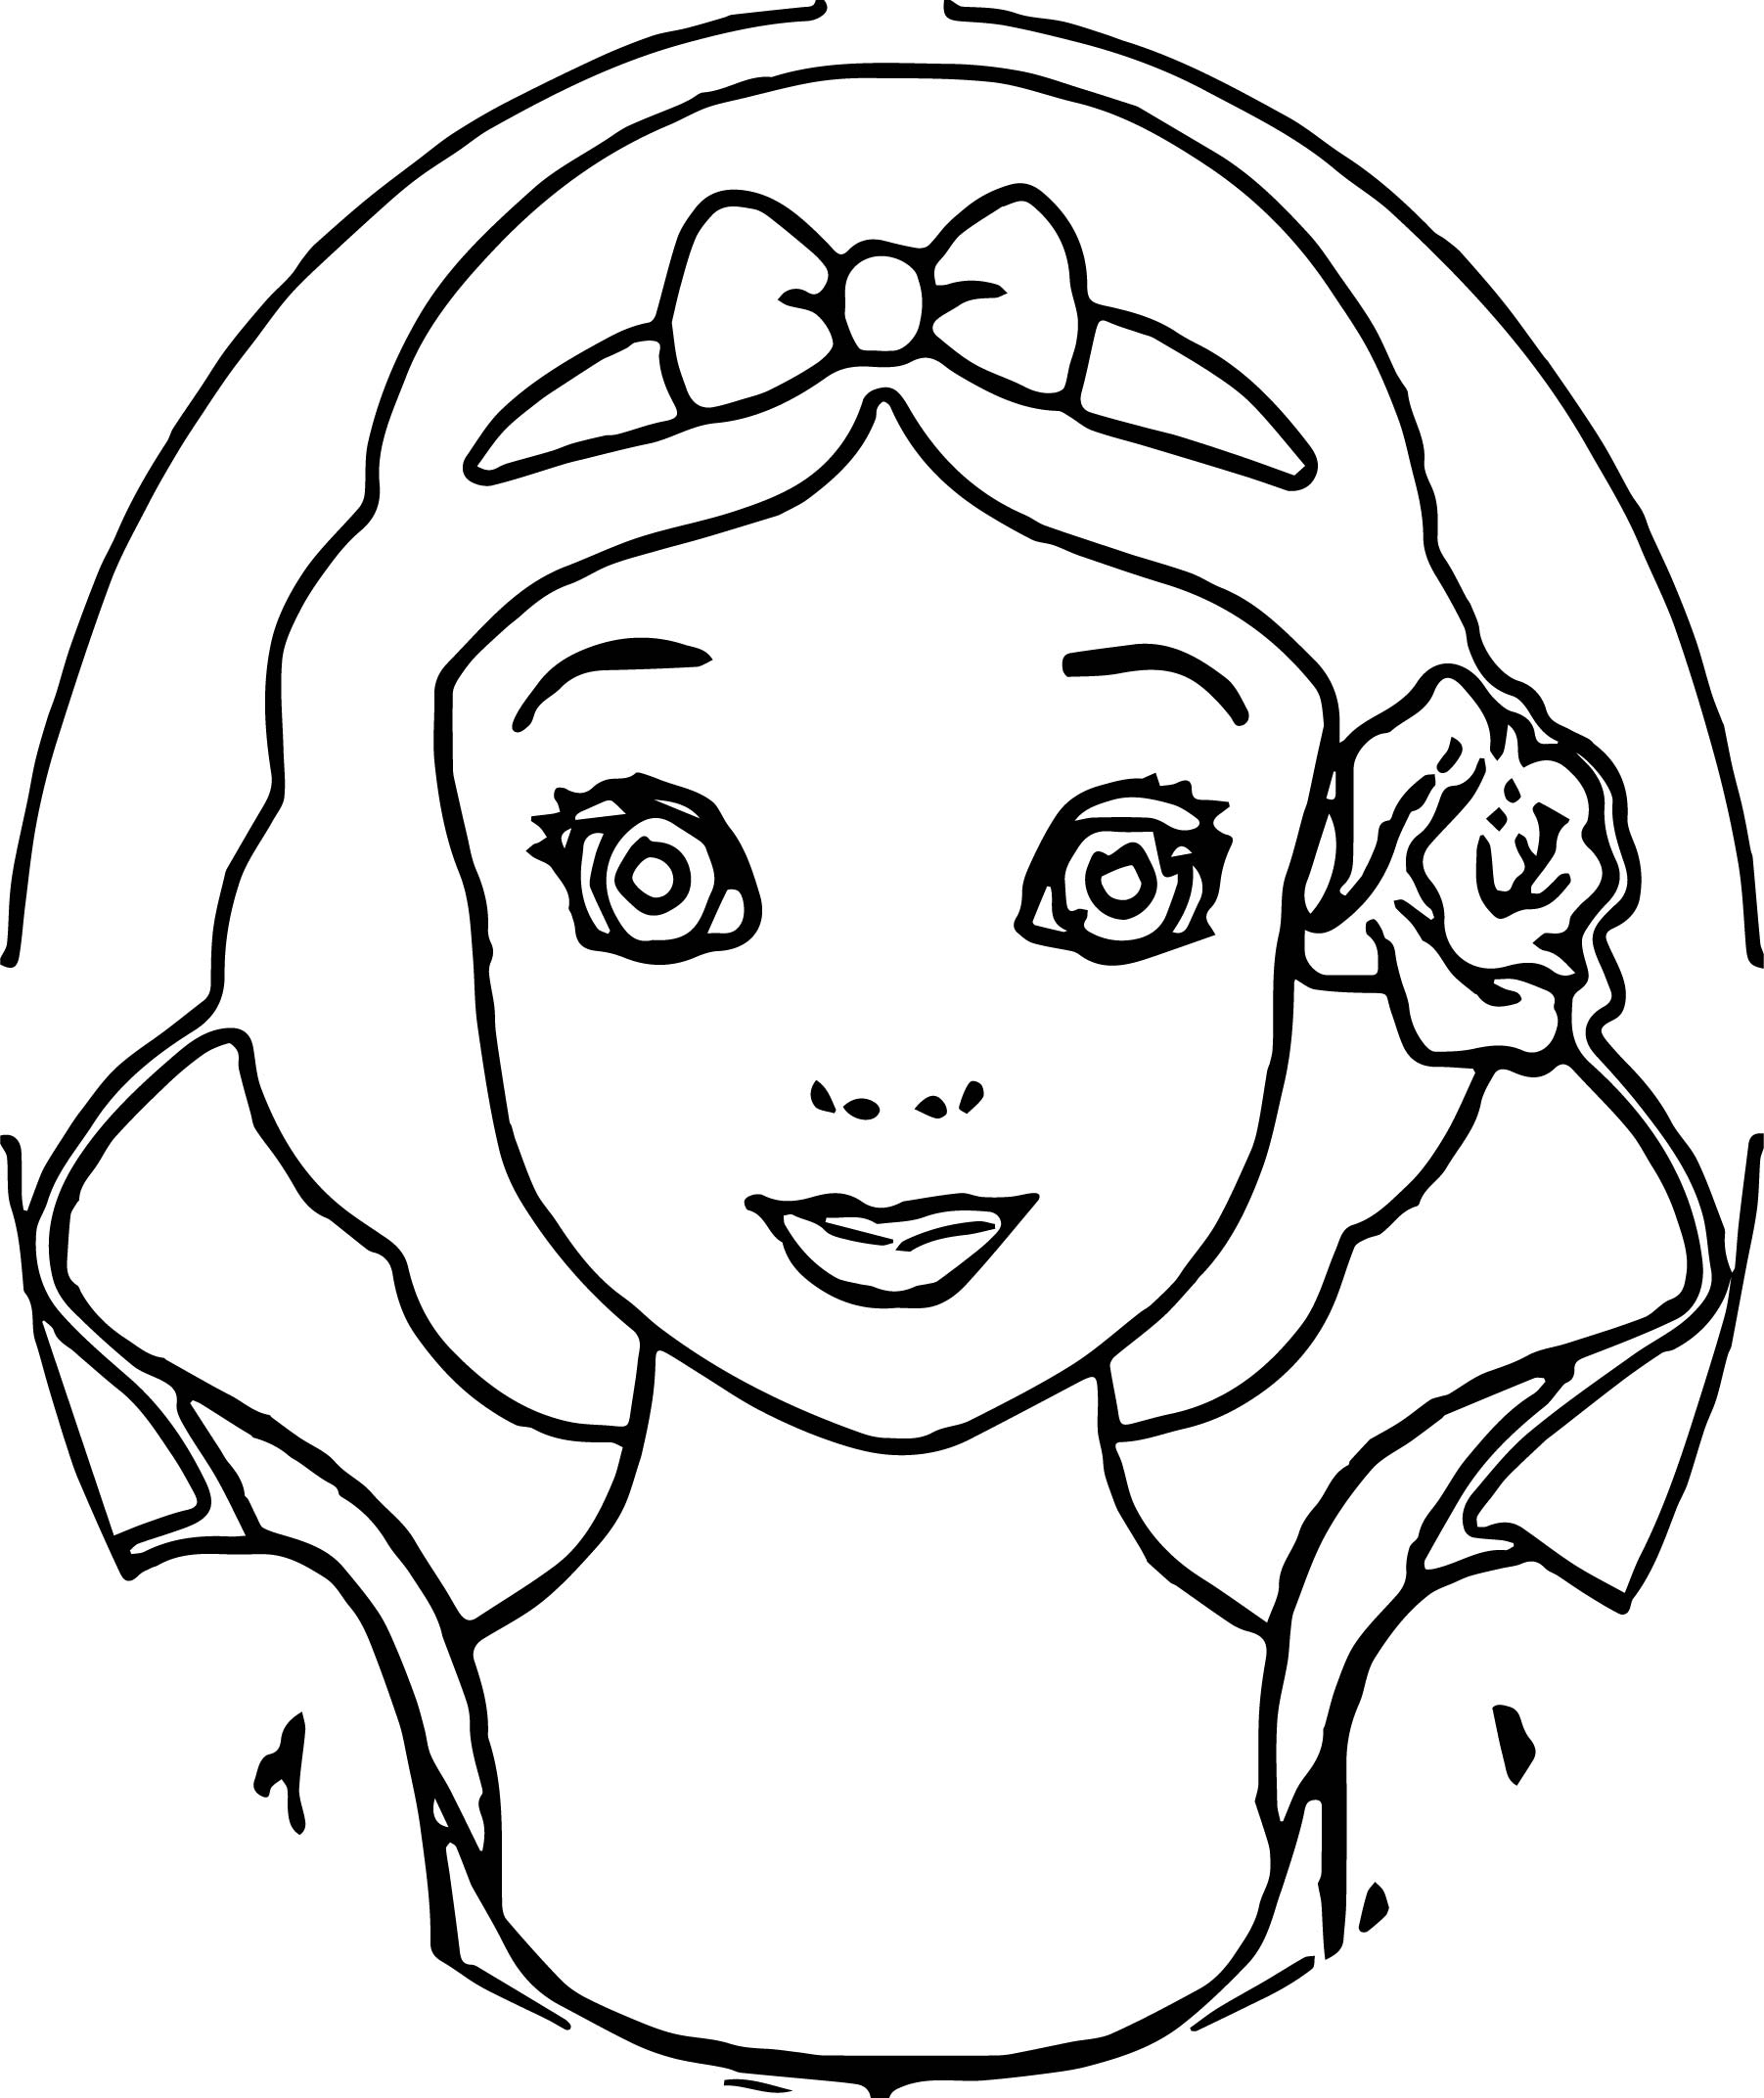 Snow White Front View Coloring Pages